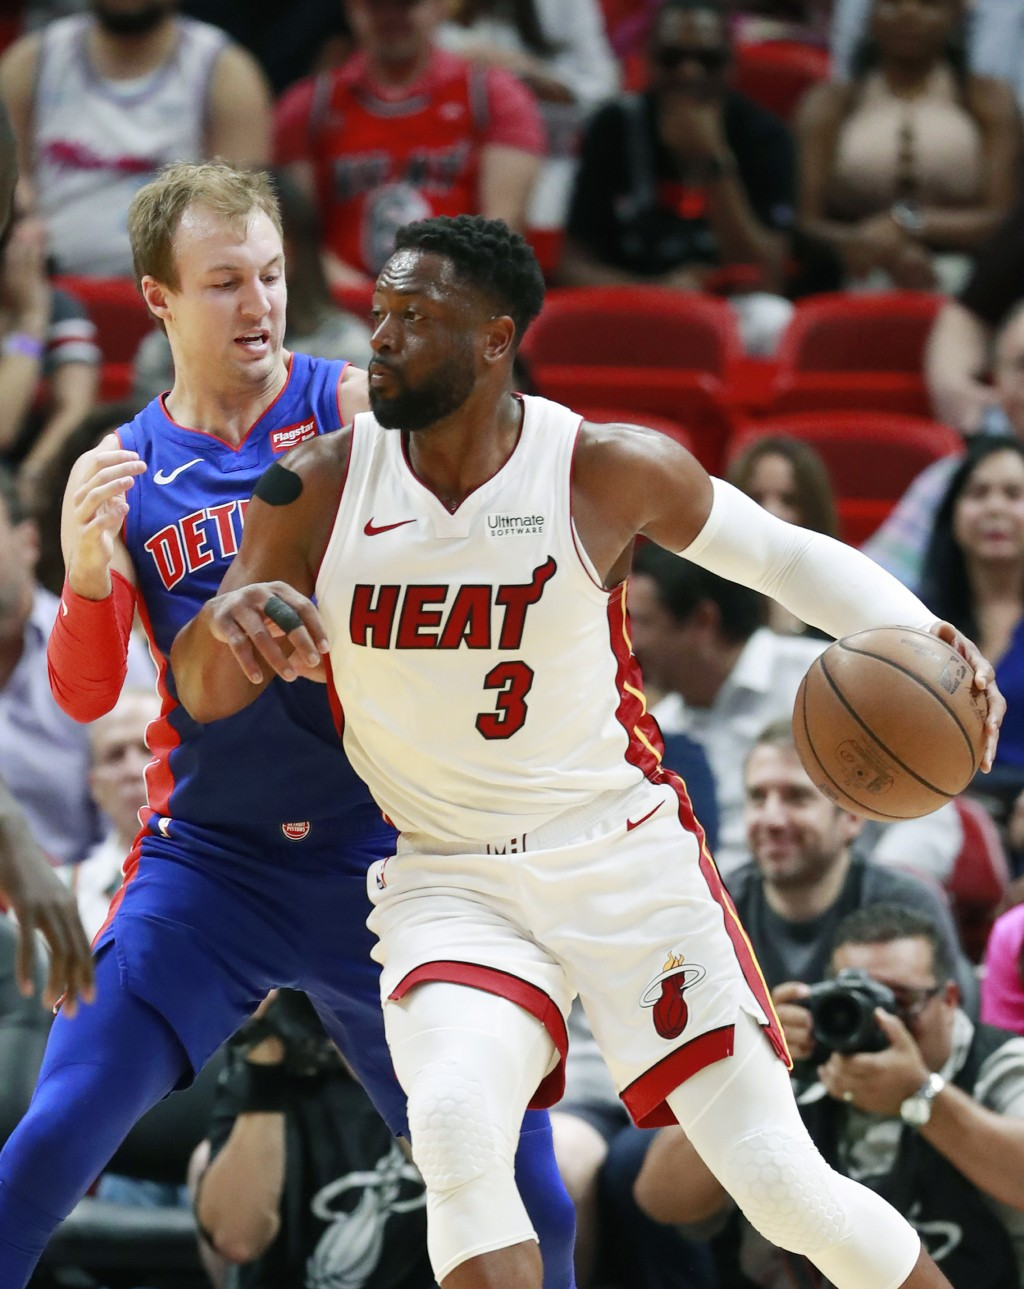 Miami Heat guard Dwyane Wade (3) drives against Detroit Pistons guard Luke Kennard during the first half of an NBA basketball game, Wednesday, March 1